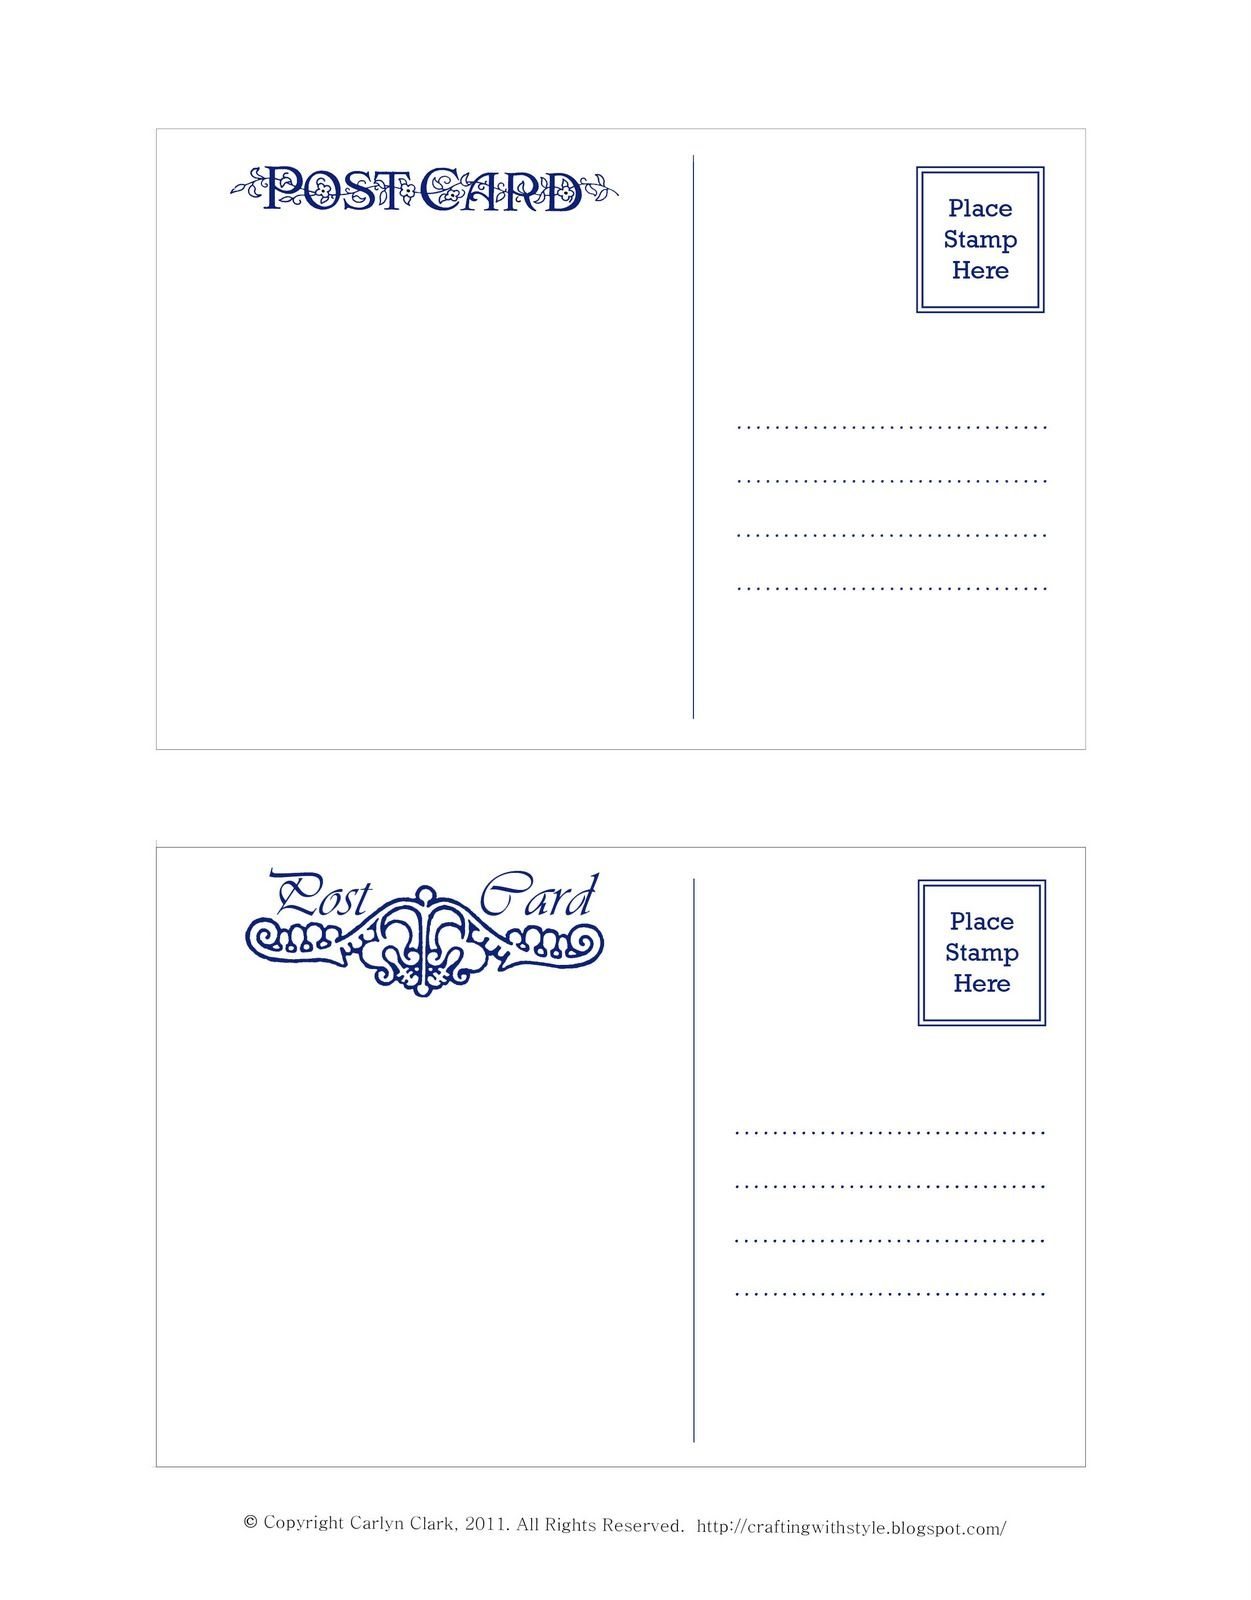 Crafting With Style Free Postcard Templates Postcards Pinterest - Card template free: postcard mailing template